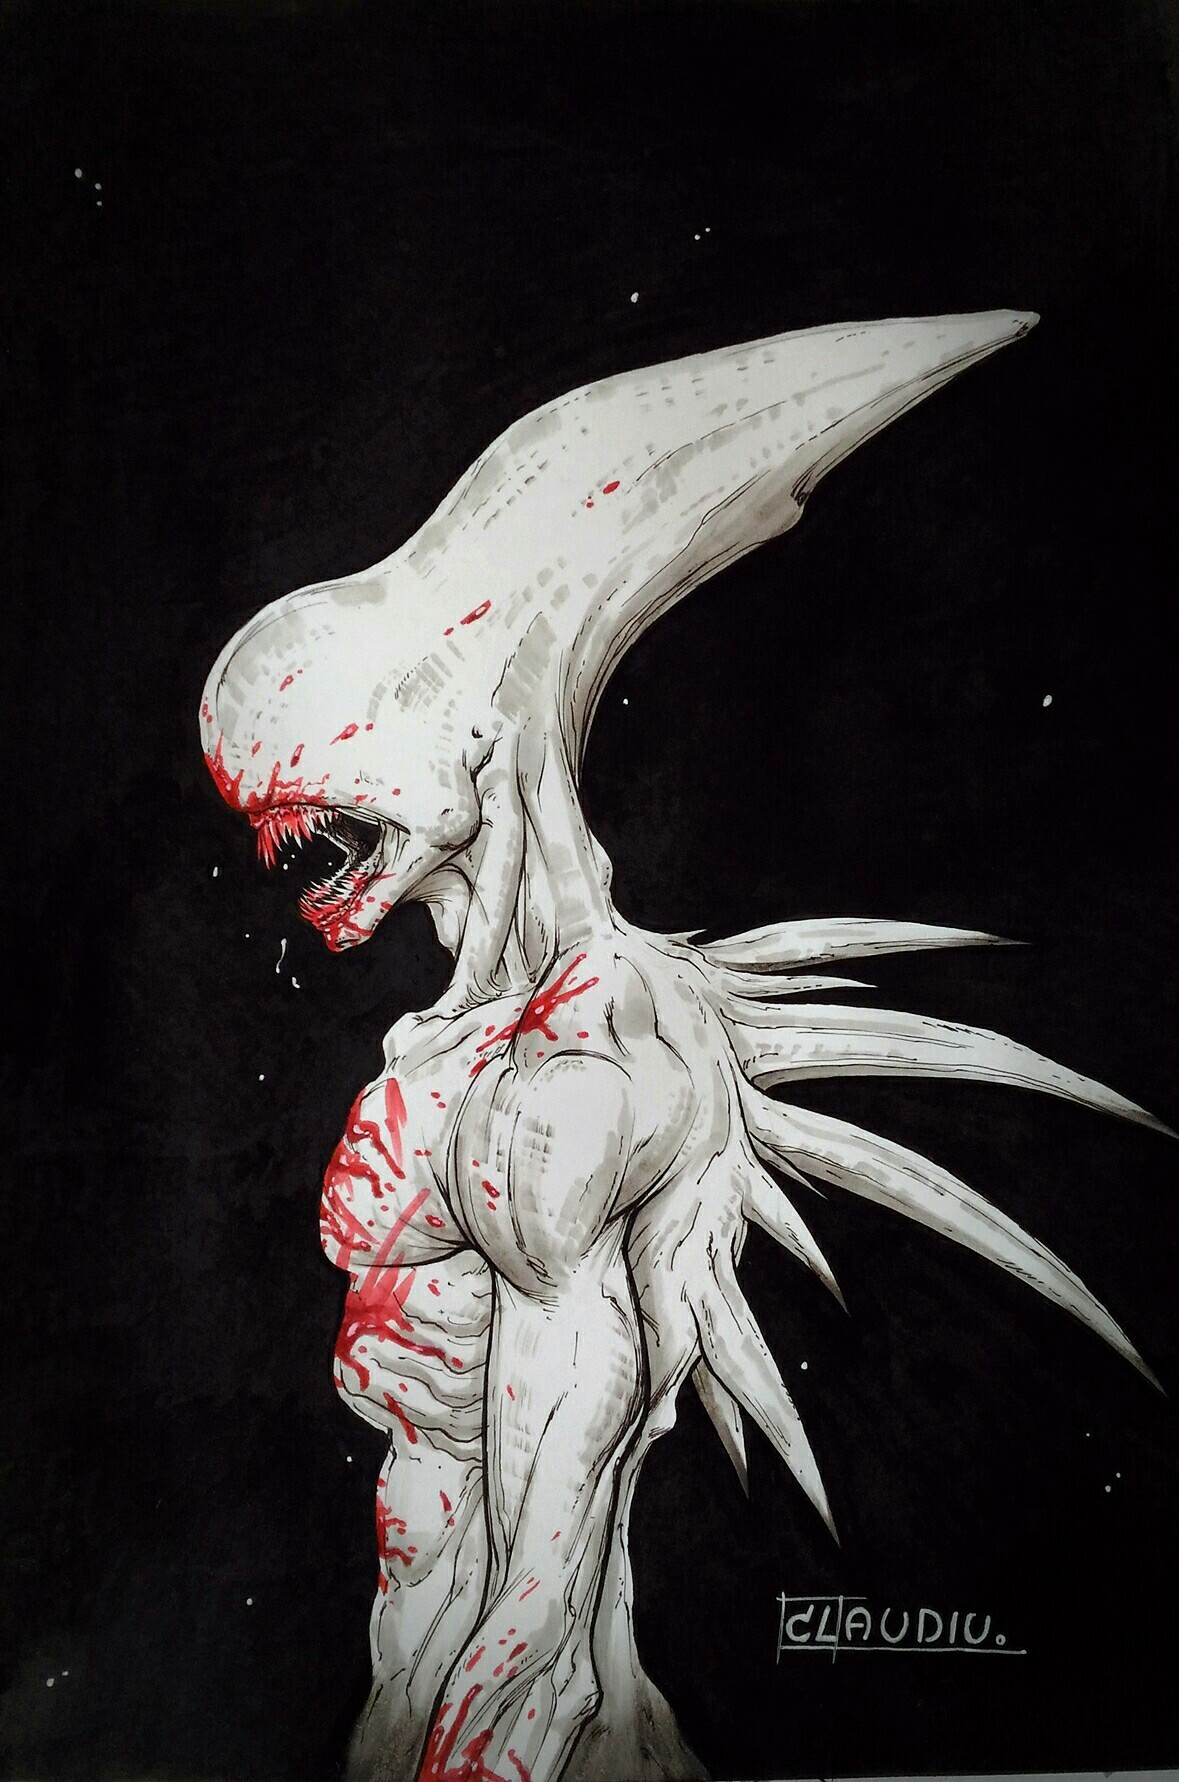 limbasan-san: